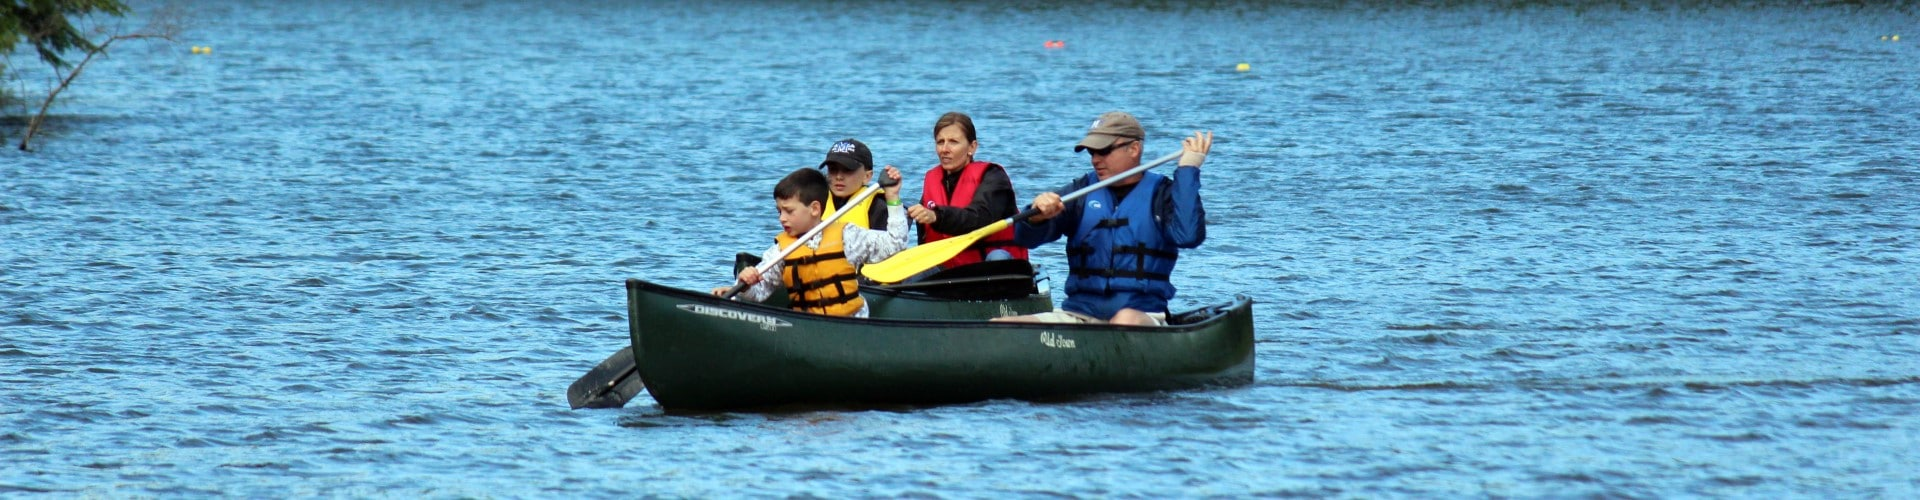 Best Family Canoes Reviewed in Detail